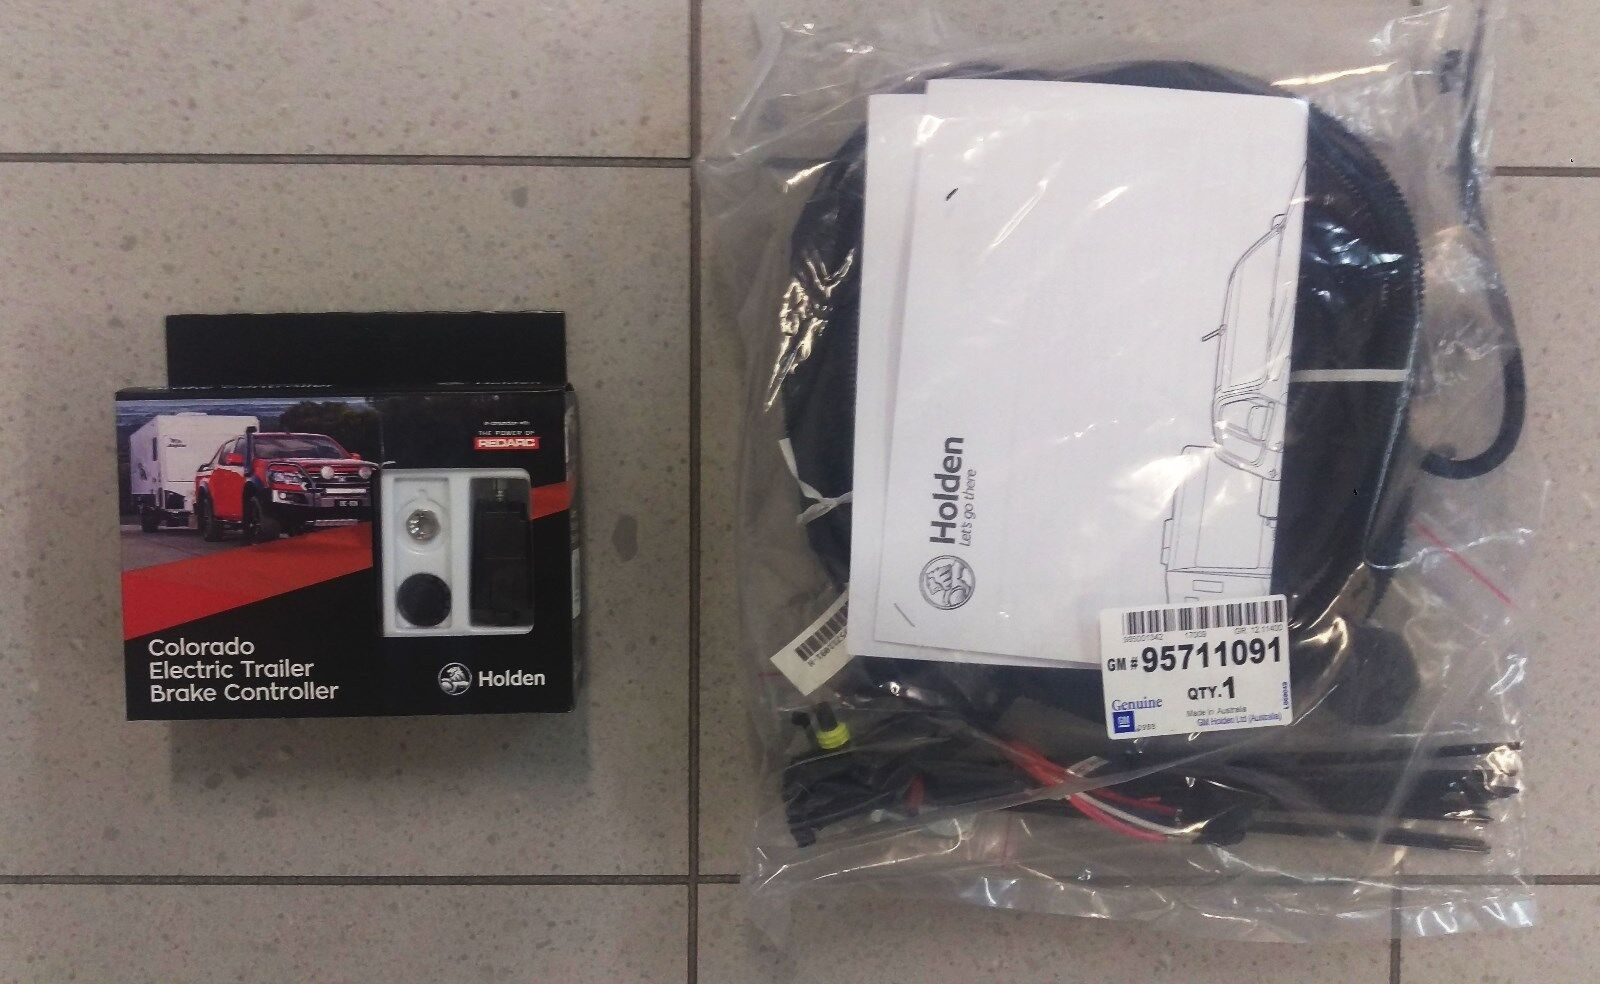 Genuine Gm Holden Colorado Electric Trailer Brake Controller My17 Ls Wiring Norton Secured Powered By Verisign